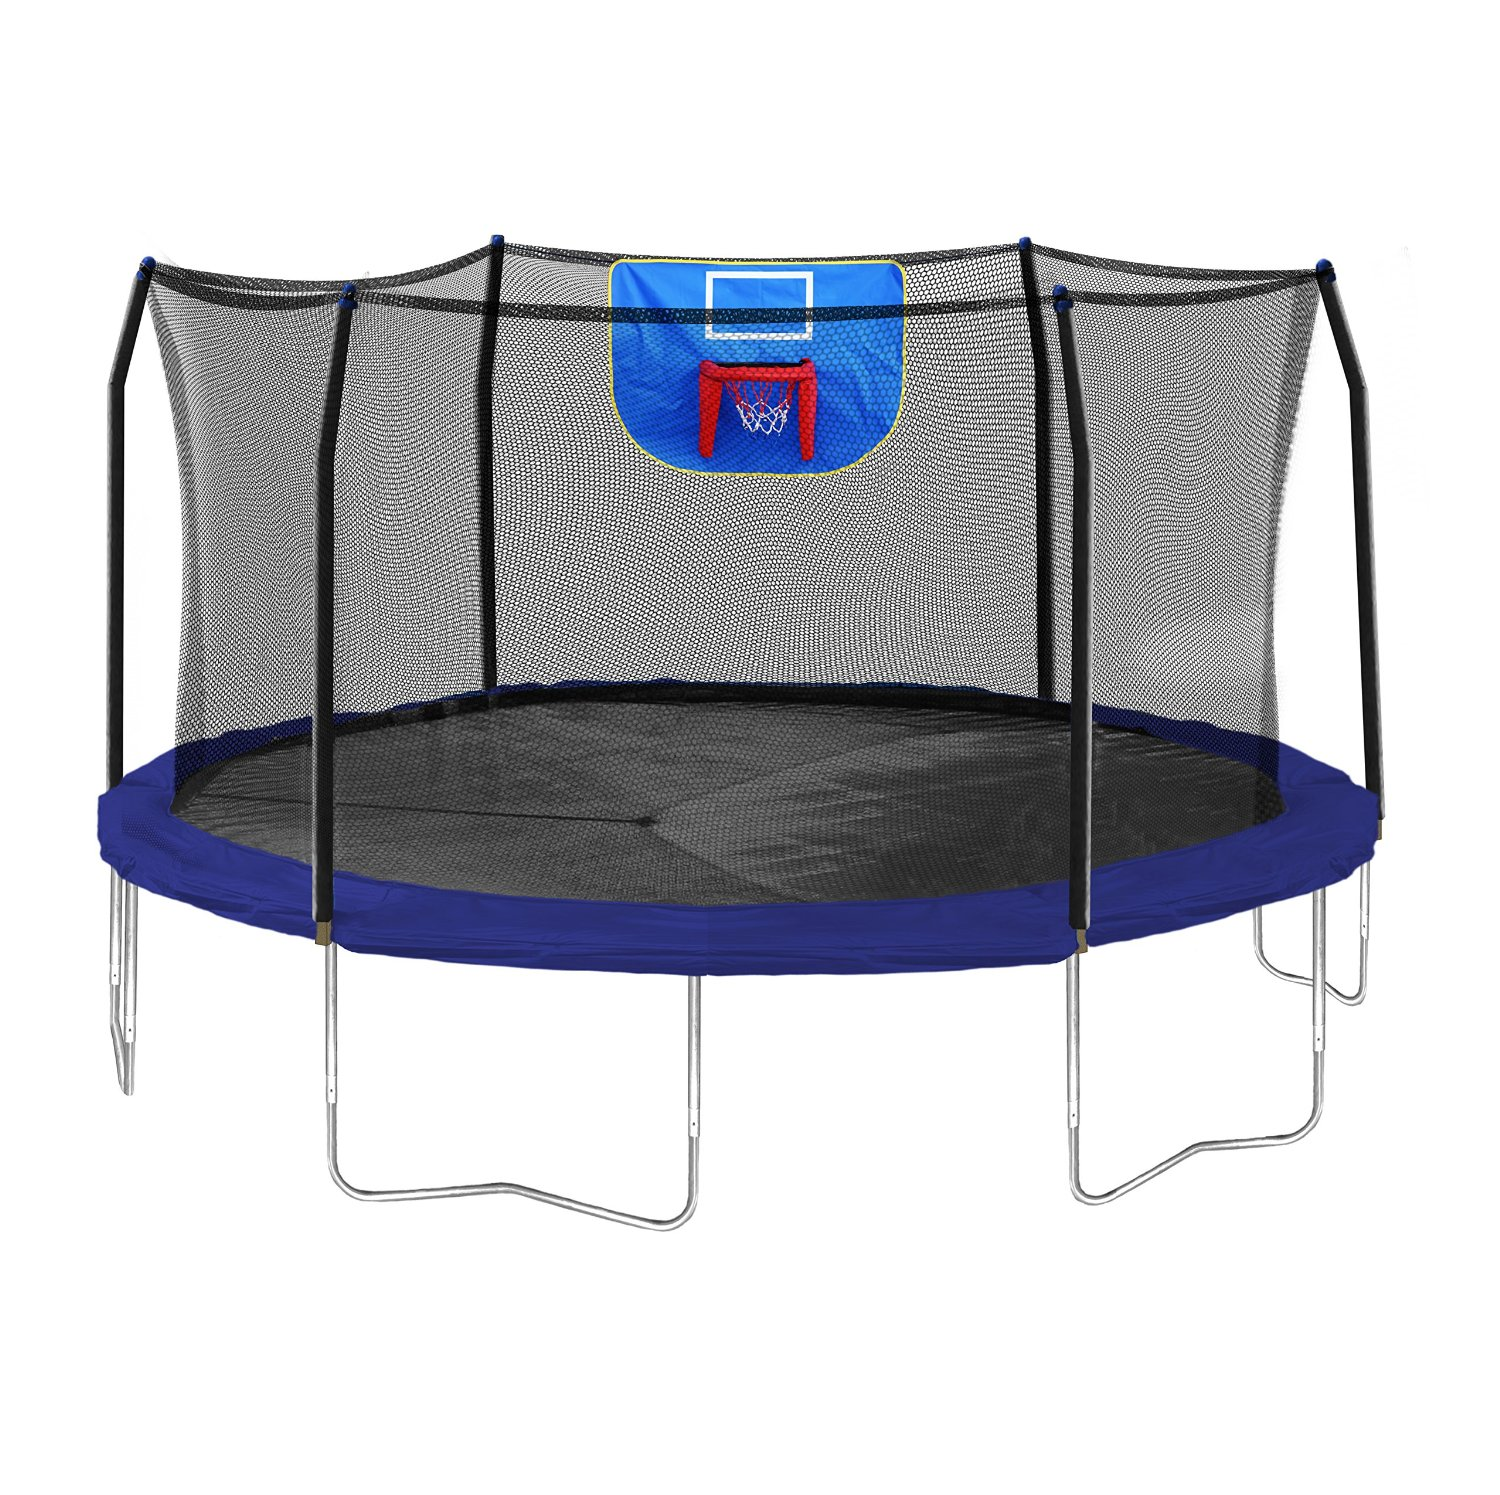 Skywalker 15 Trampoline With Safety Enclosure Reviews: Amazon: Today Only-Skywalker Trampolines 15-Feet Jump N